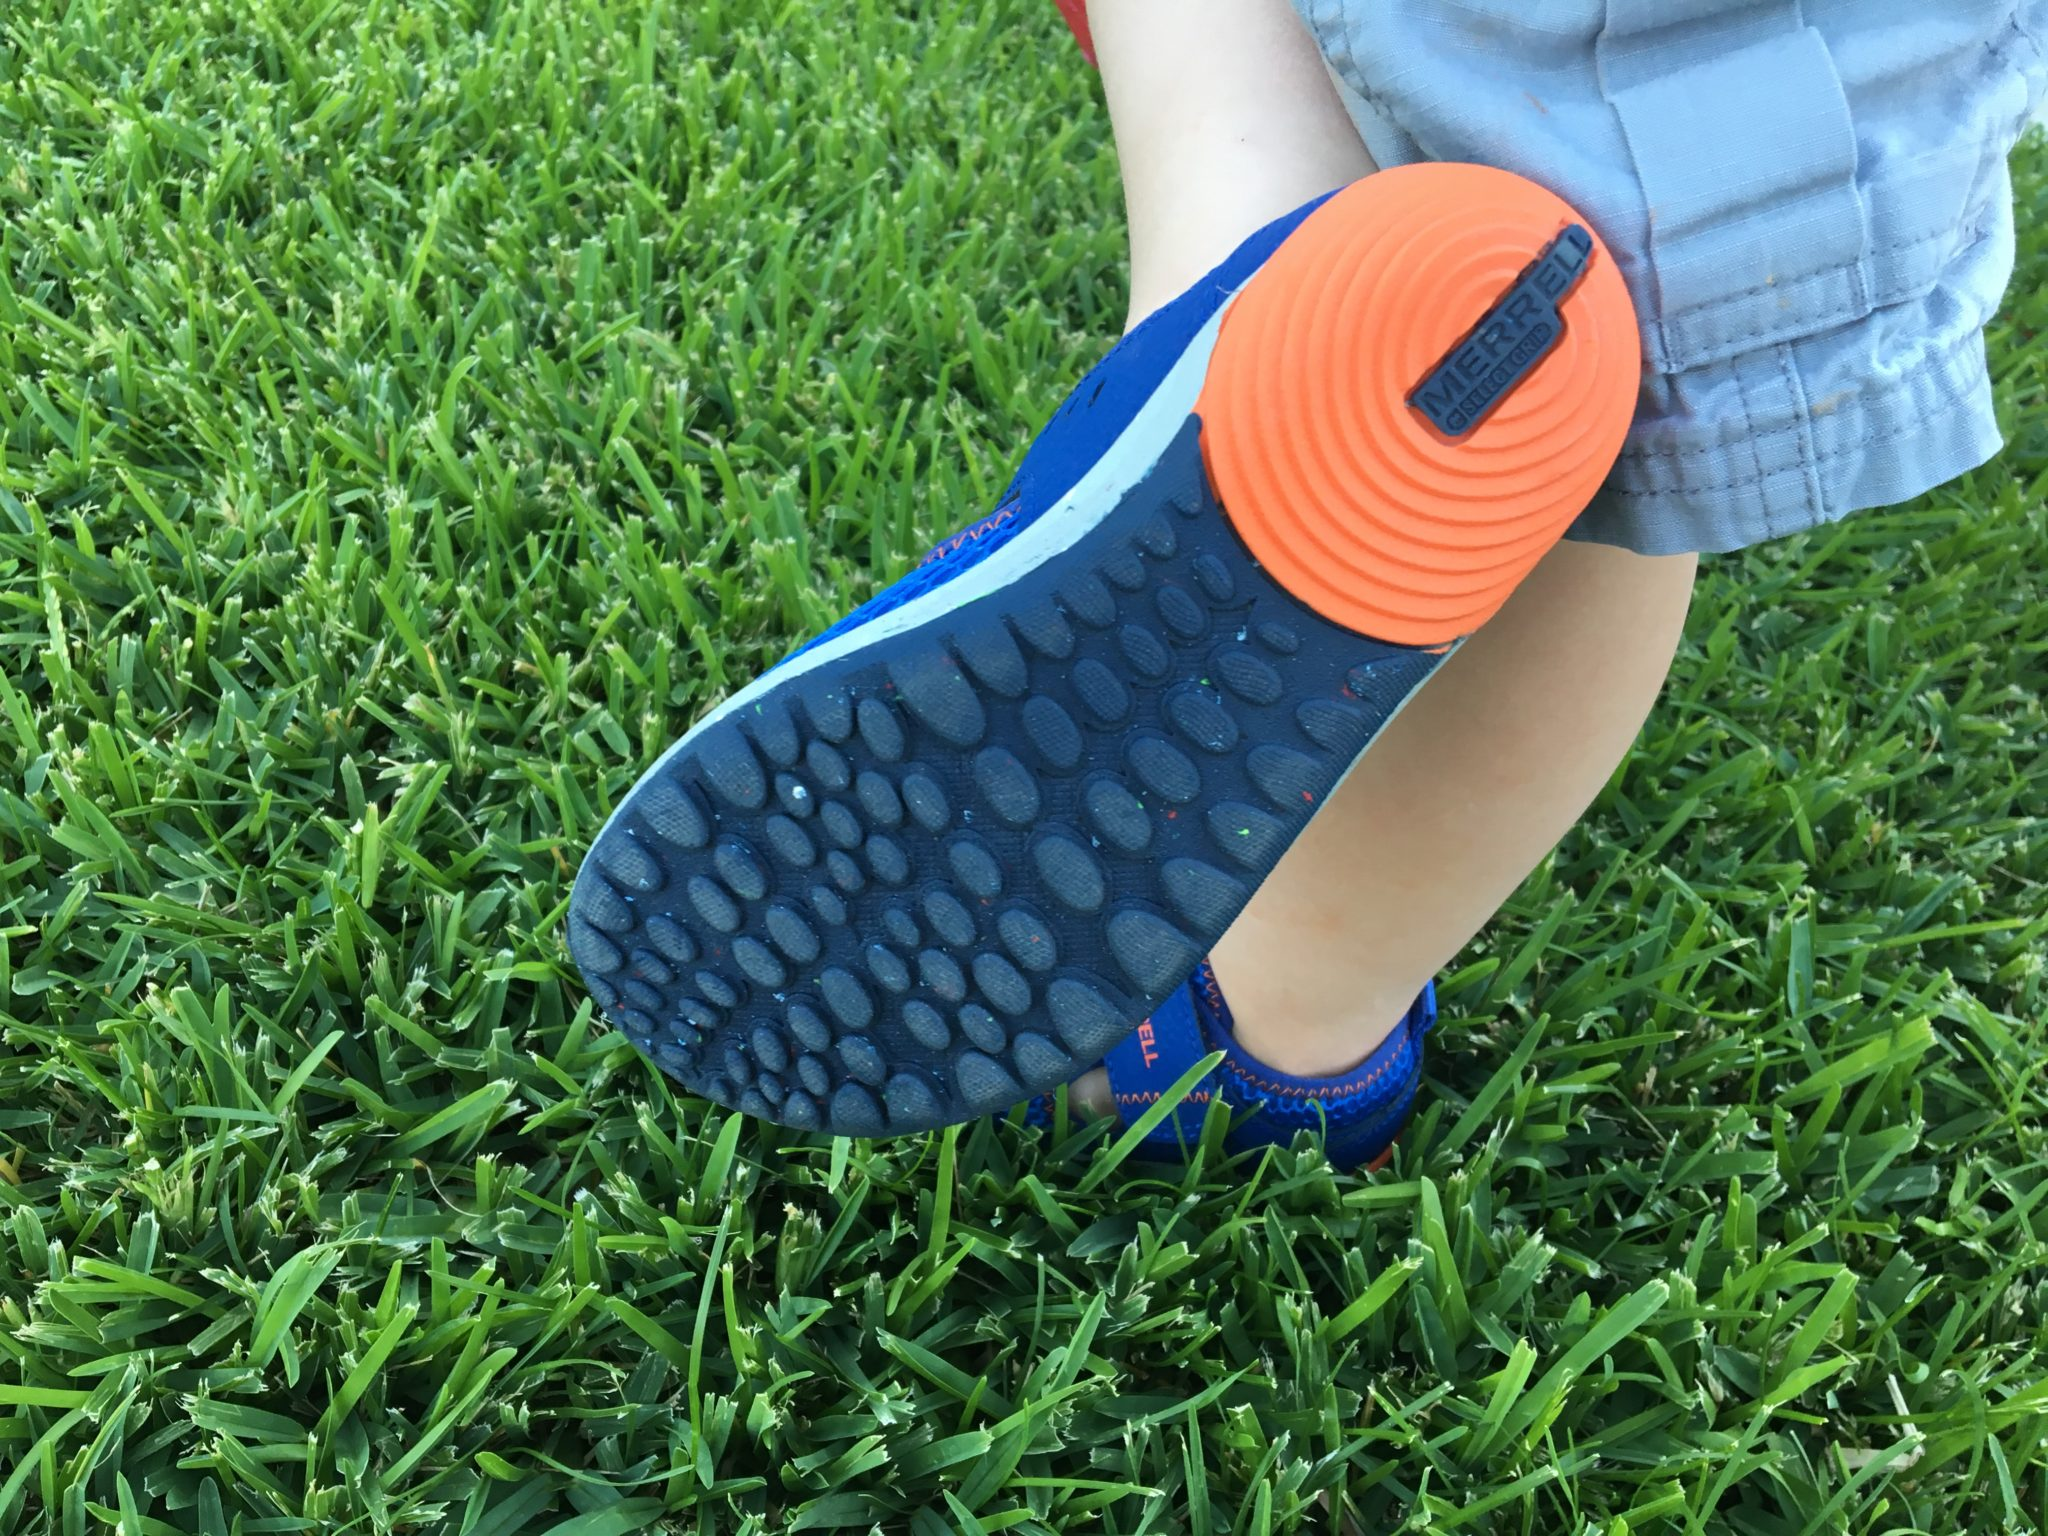 Multidirectional tread for a barefoot feel